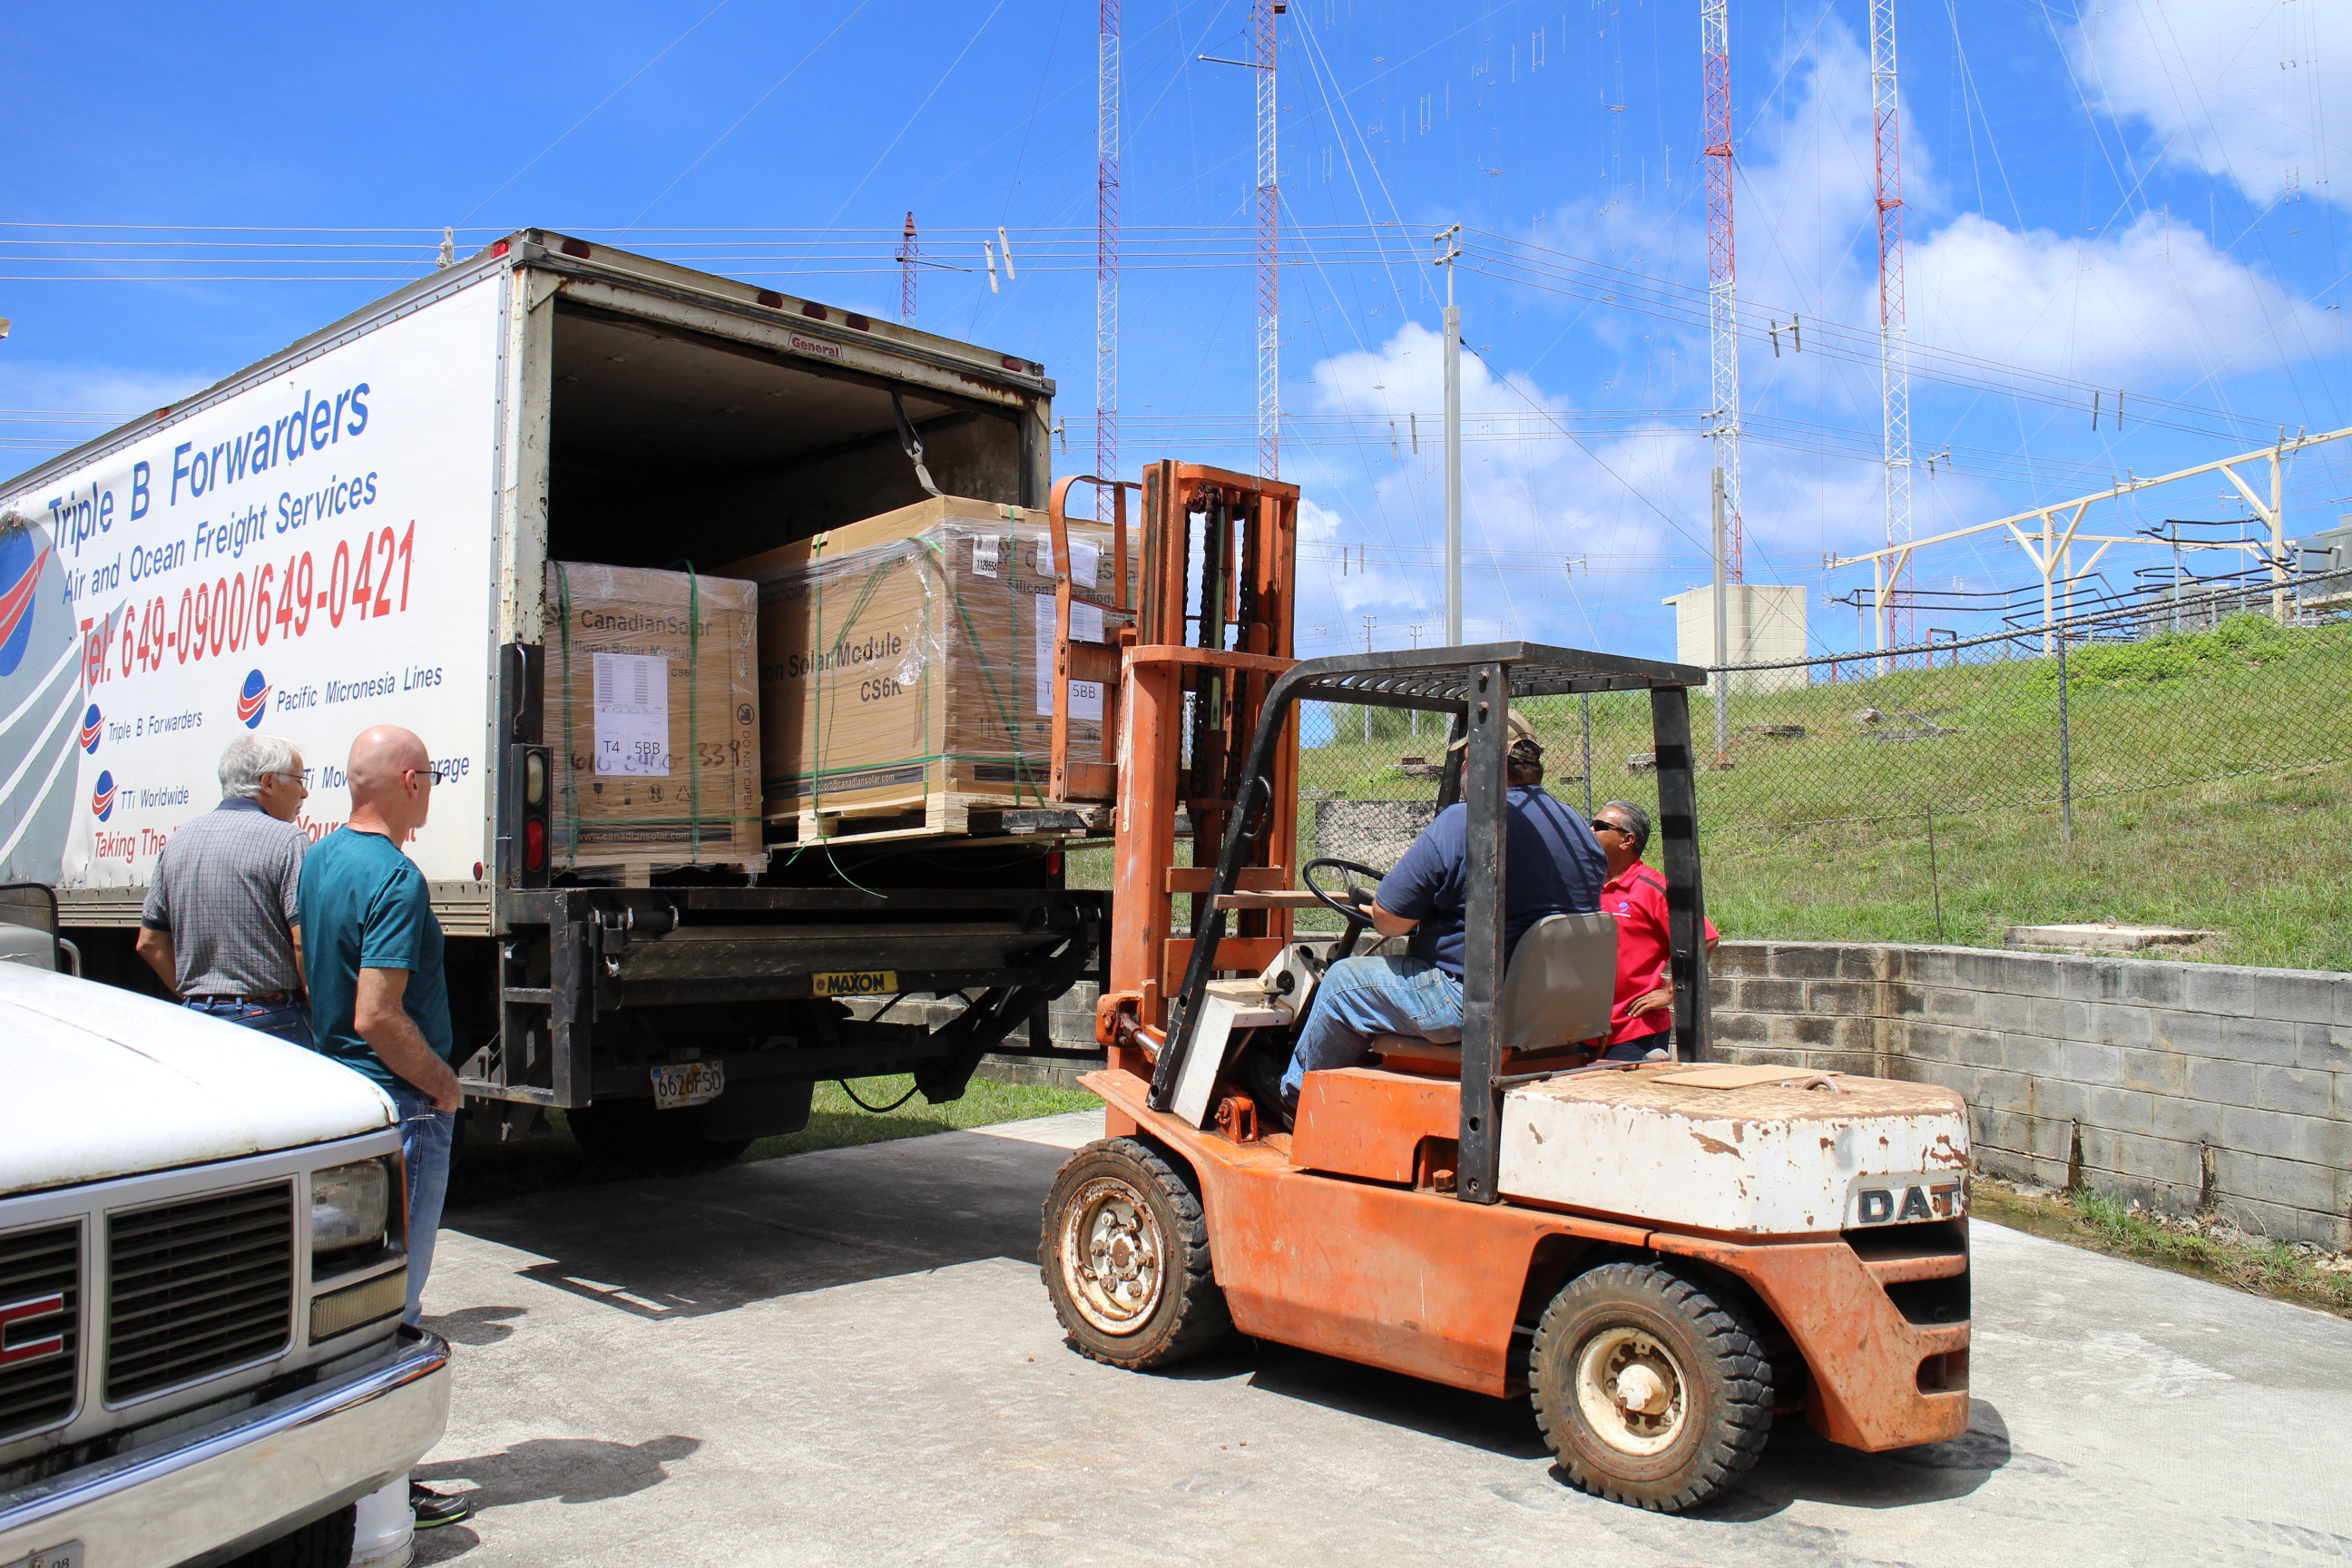 The Guam team unloads more solar panels to complete phase 3 of the project.